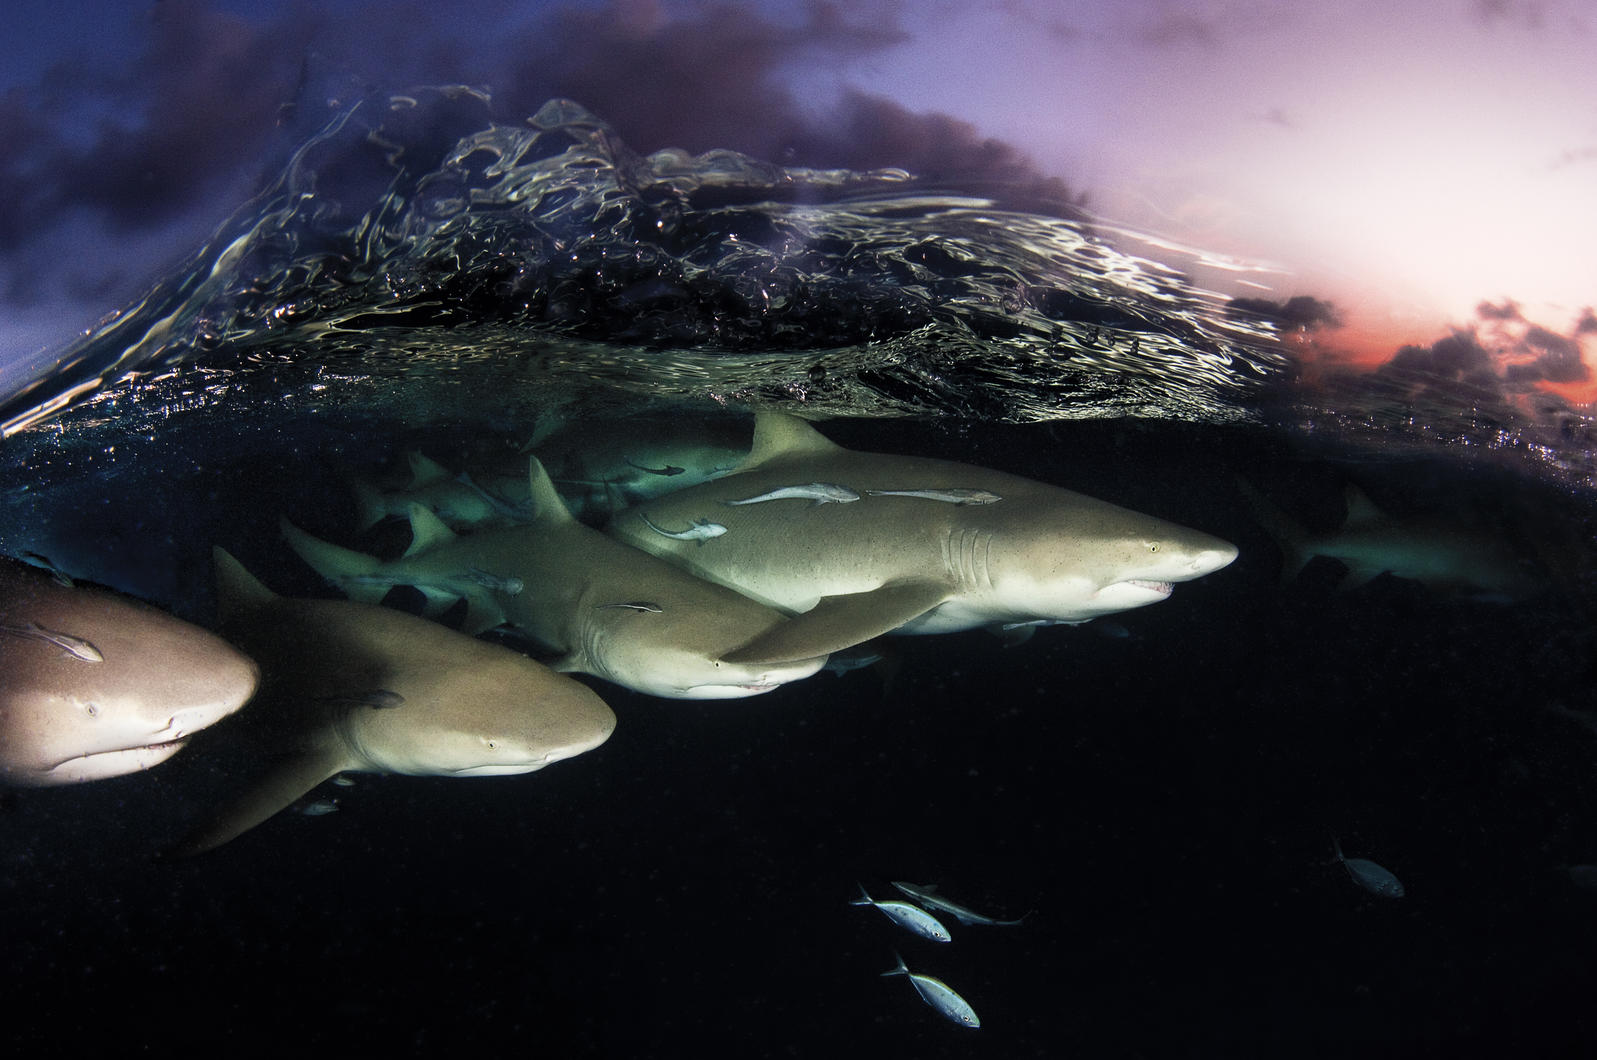 Lemon sharks on patrol. Adult lemons have few predators—save humans. They're a popular sport fish, and their fins are highly prized for shark-fin soup. Photograph by David Doubilet/National Geographic Stock